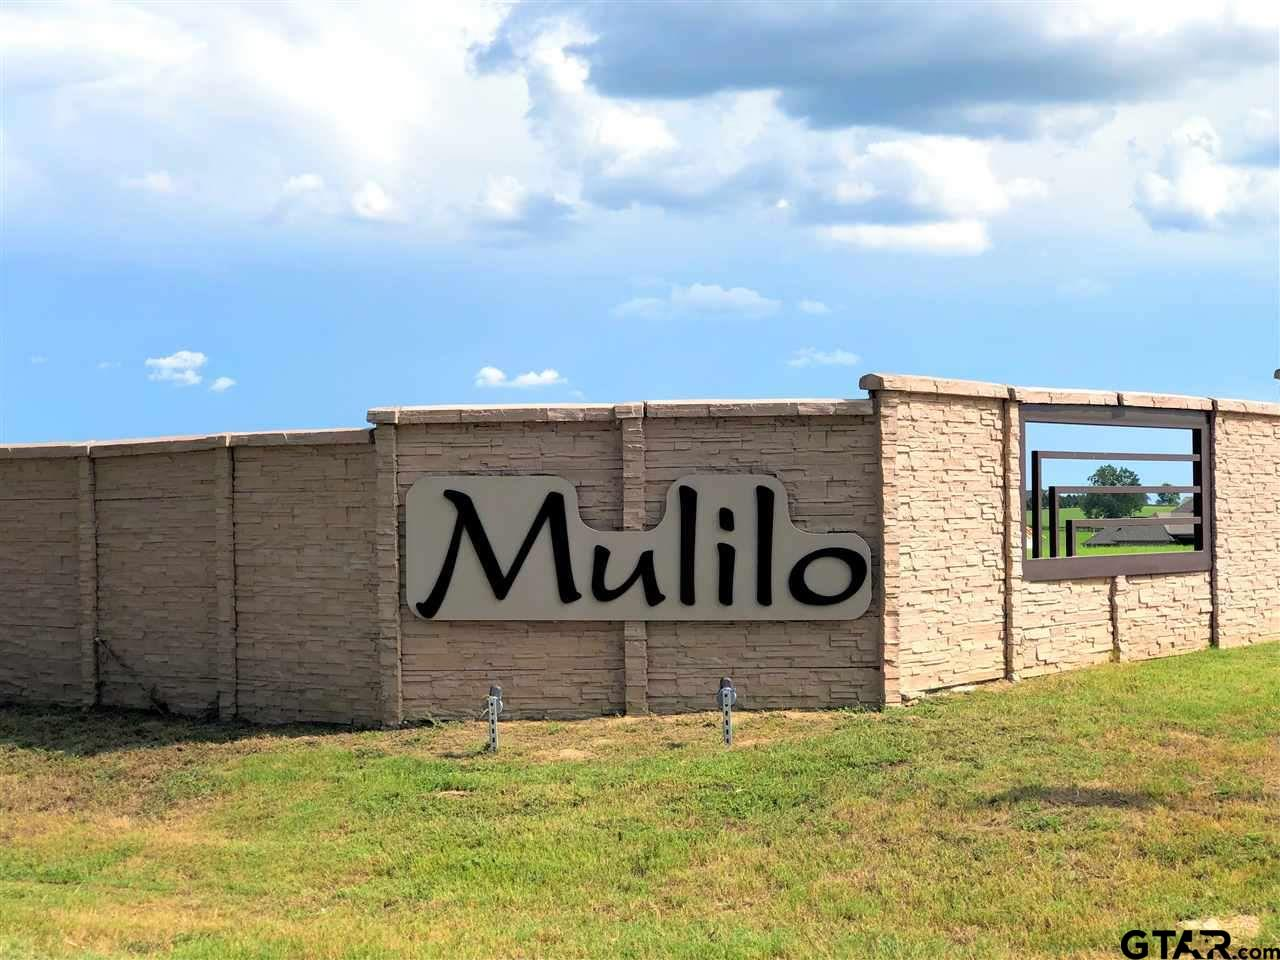 Lots available in Mulilo Subdivision just south of Bullard. Ready for development!